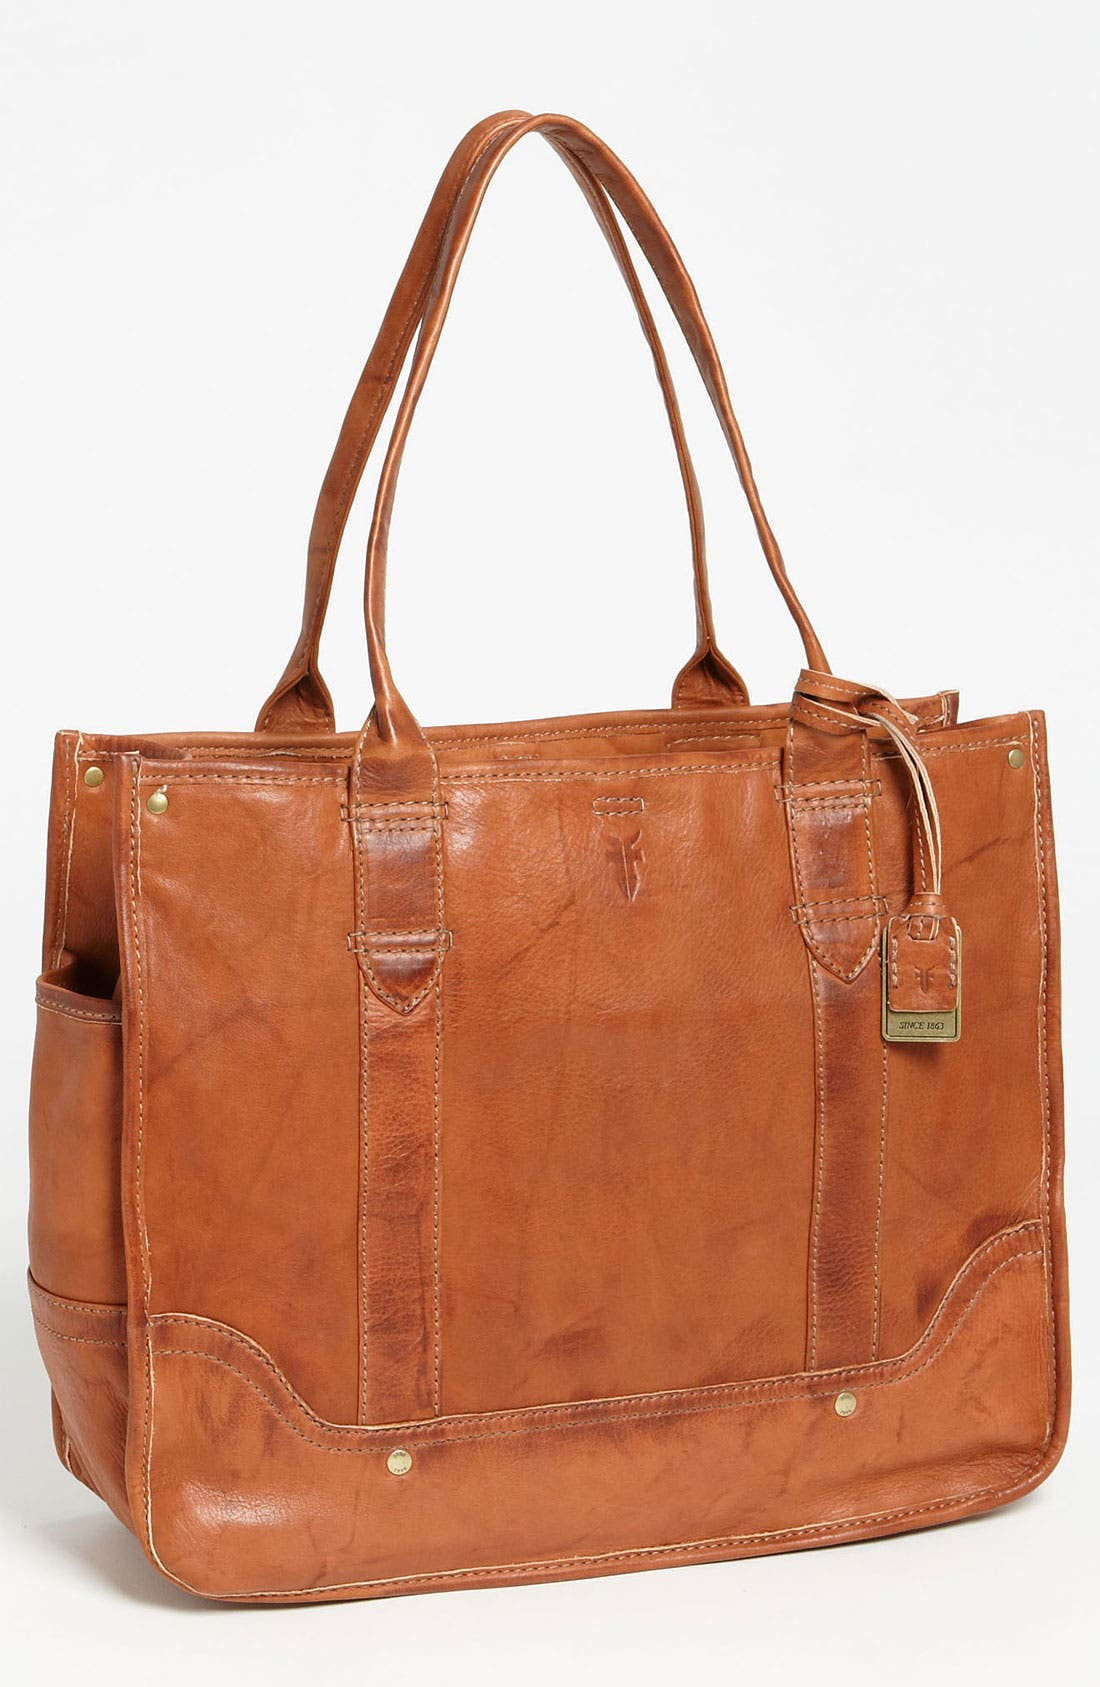 Alternate Image 1 Selected - Frye 'Campus' Leather Shopper